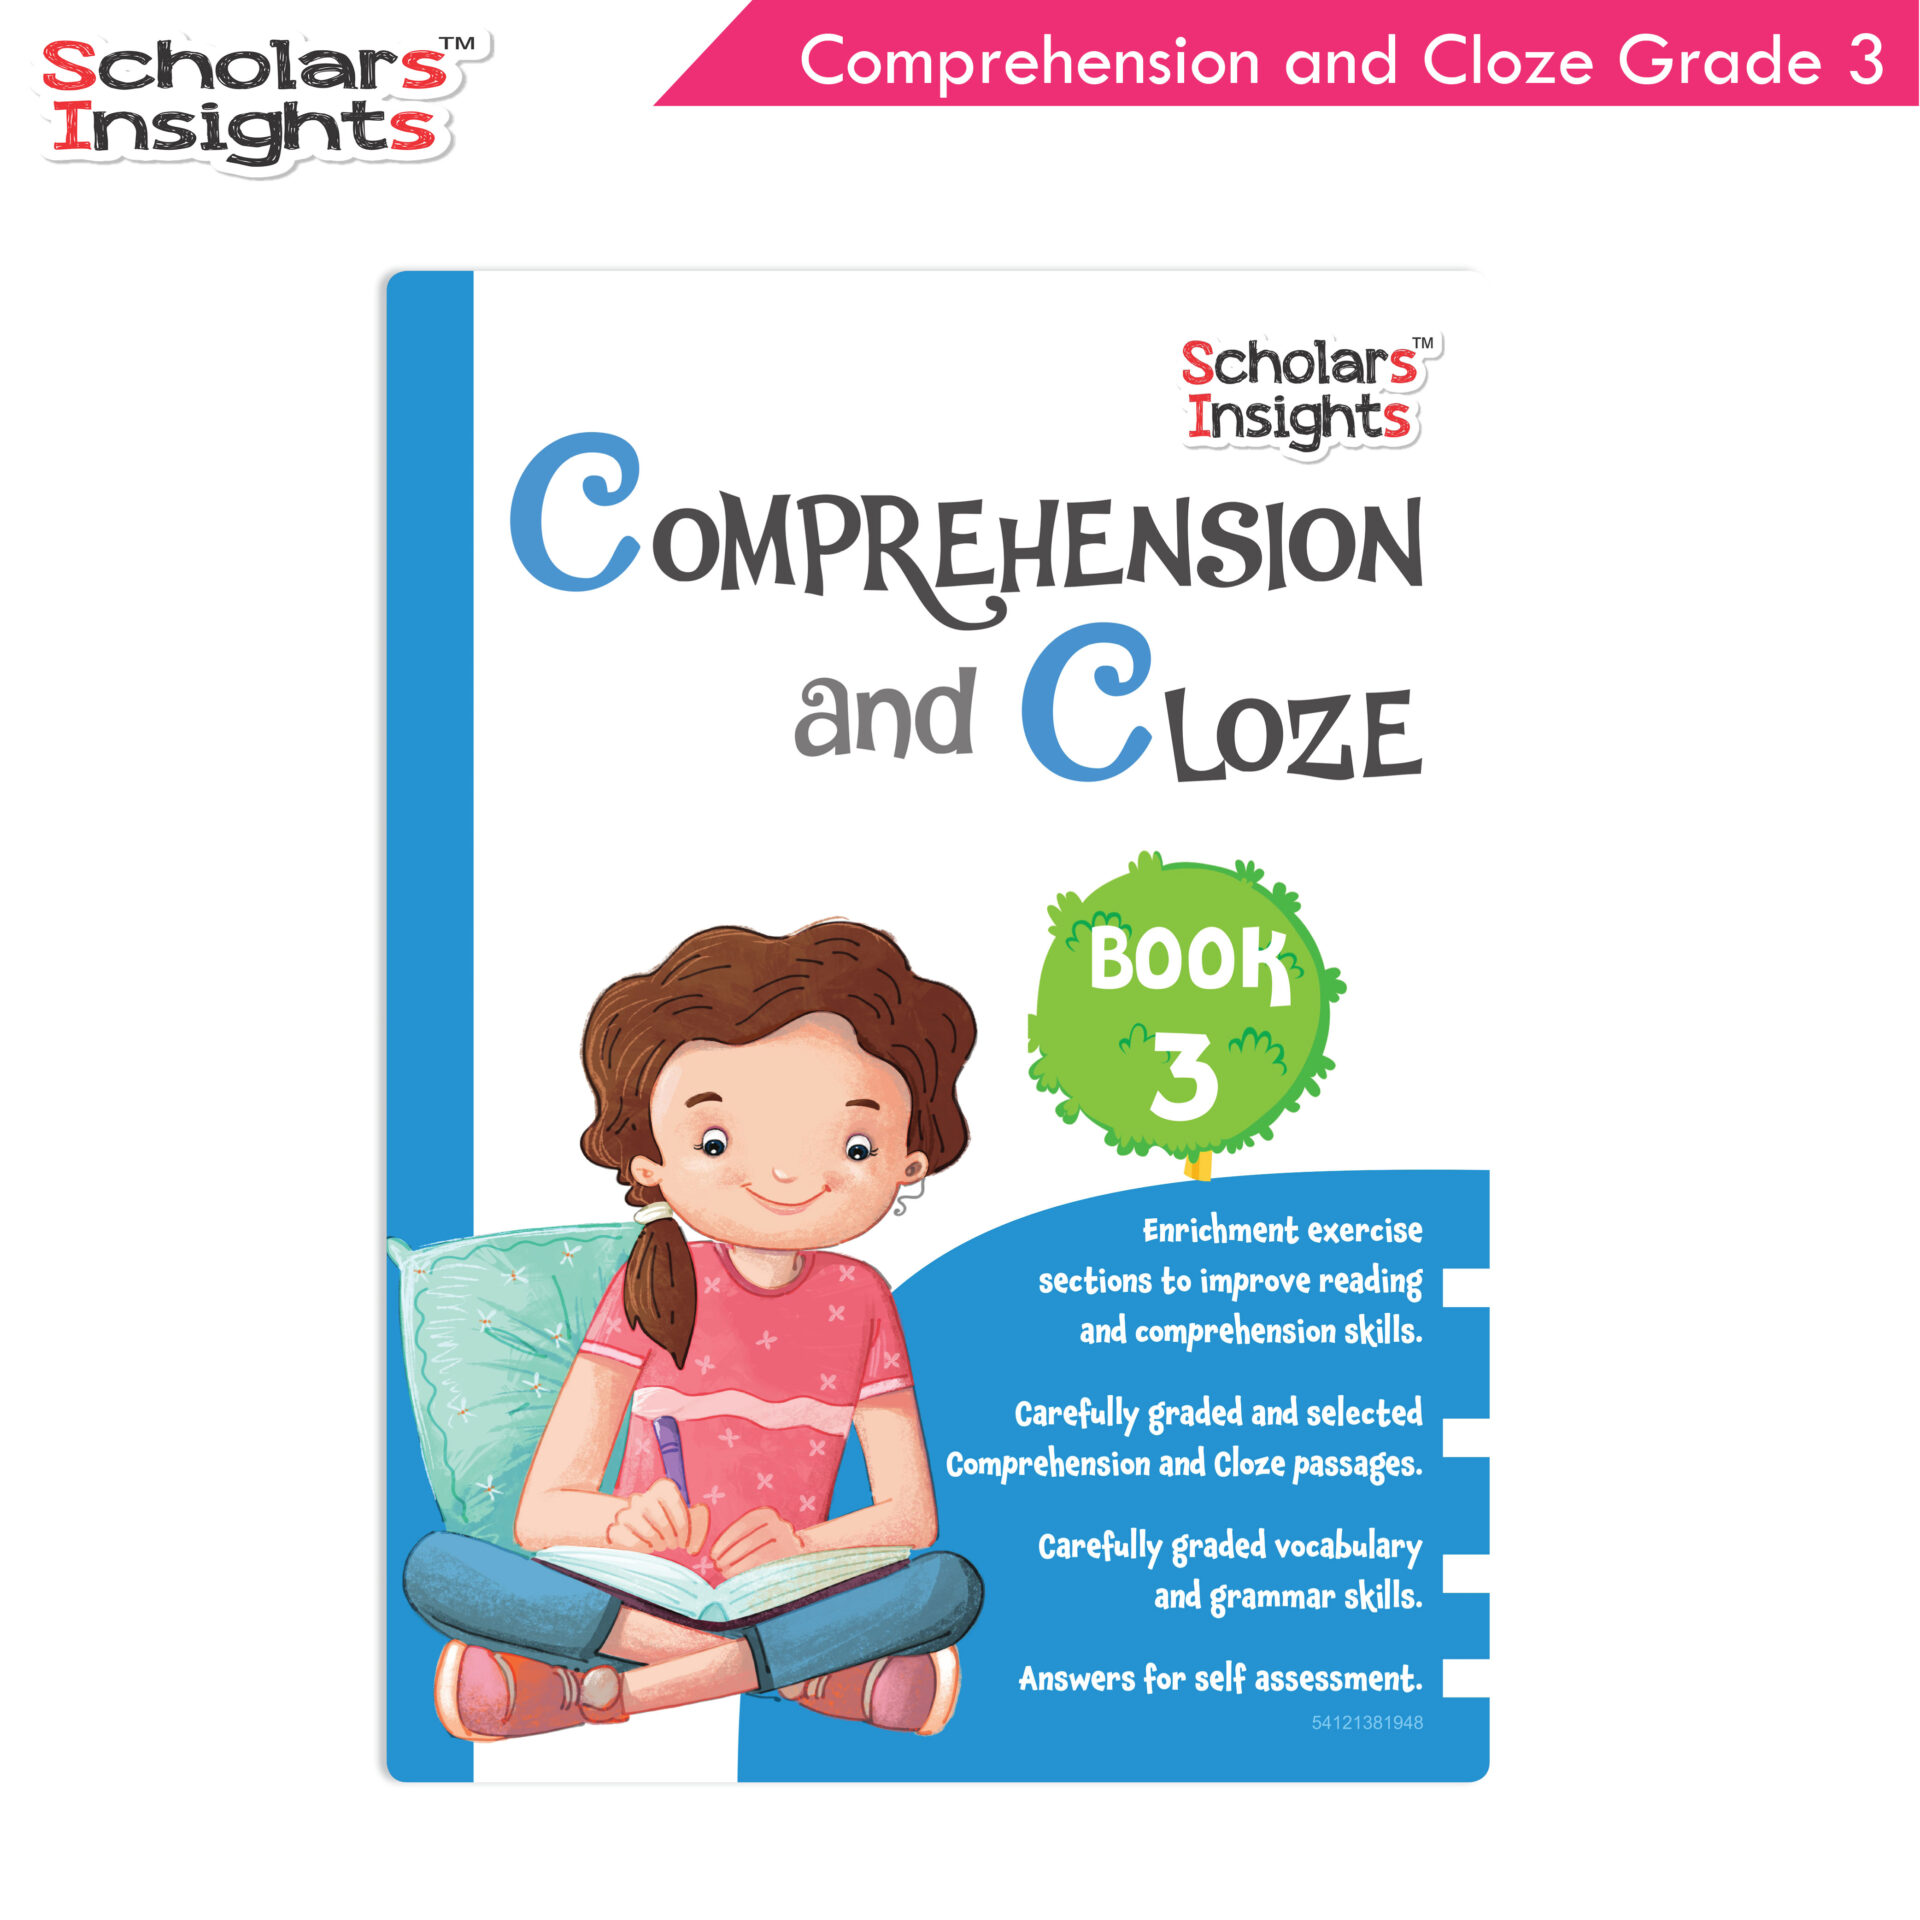 Scholars Insights Comprehension and Cloze Grade 3 1 1